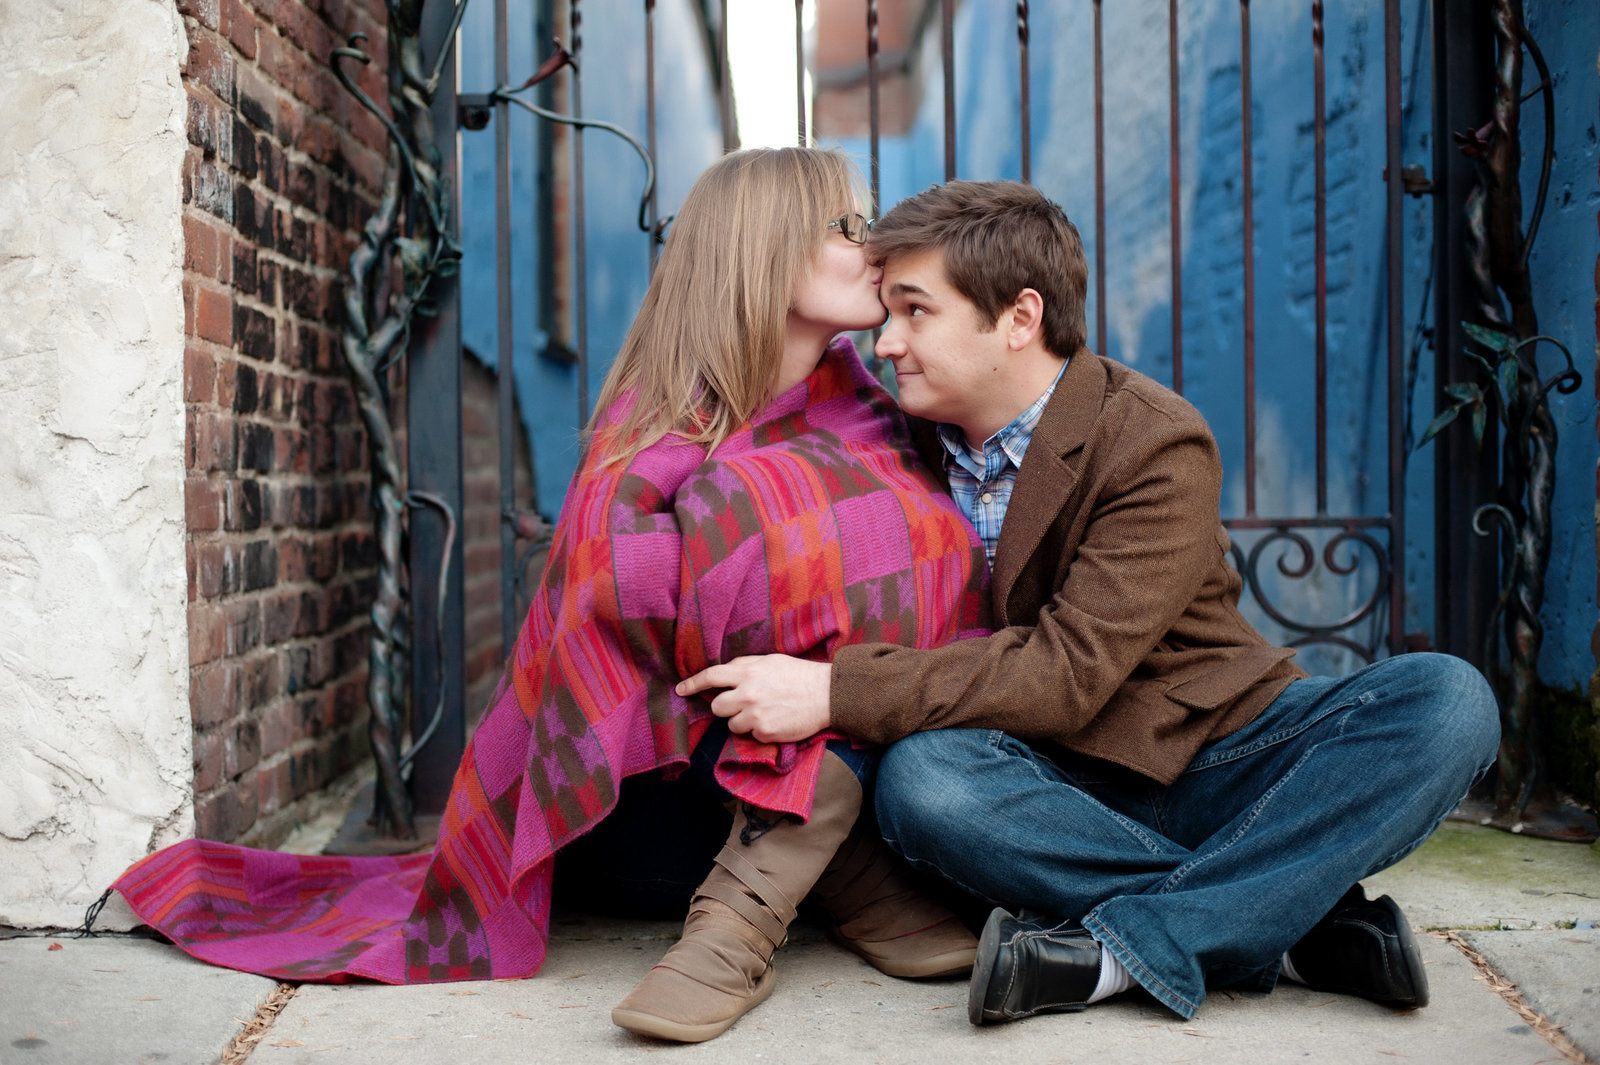 a girl wrapped in a blanket kisses her fiance's forehead sitting on the sidewalk